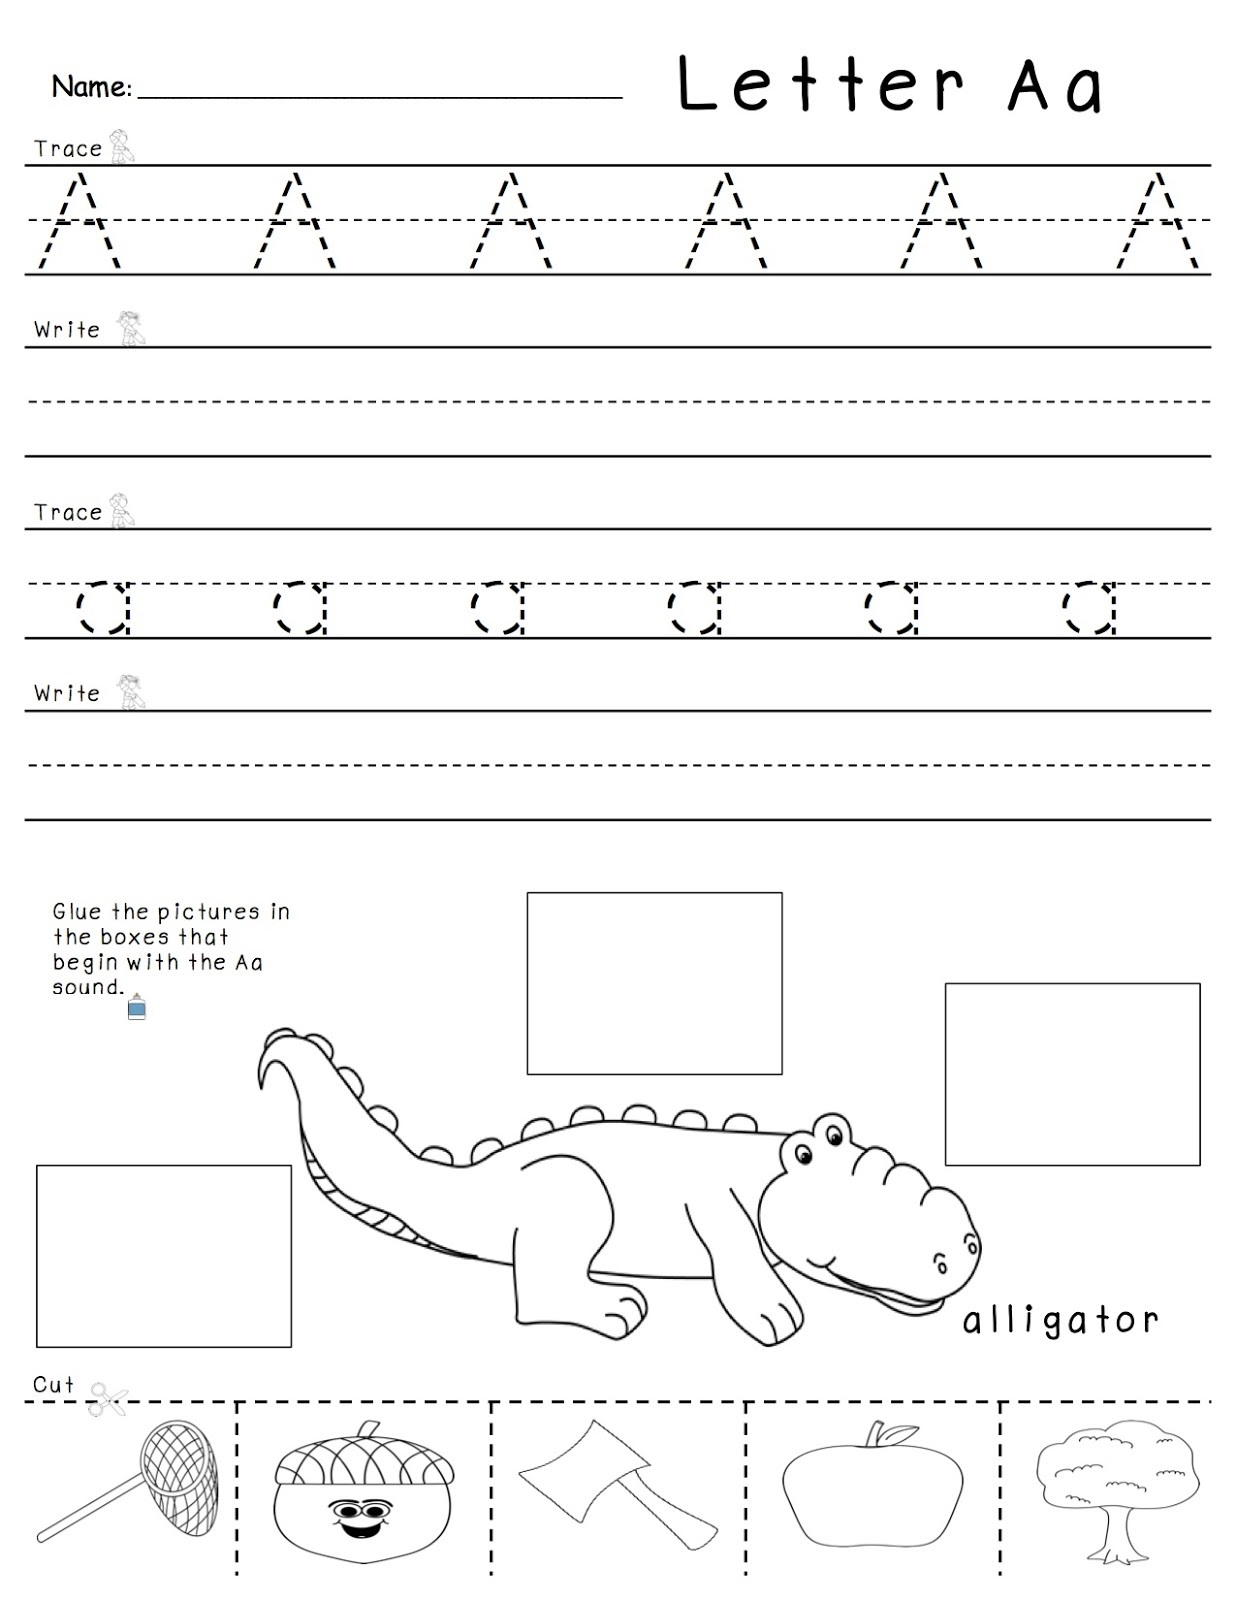 Worksheets Letter A Worksheets trace the letter a worksheets activity shelter alligator